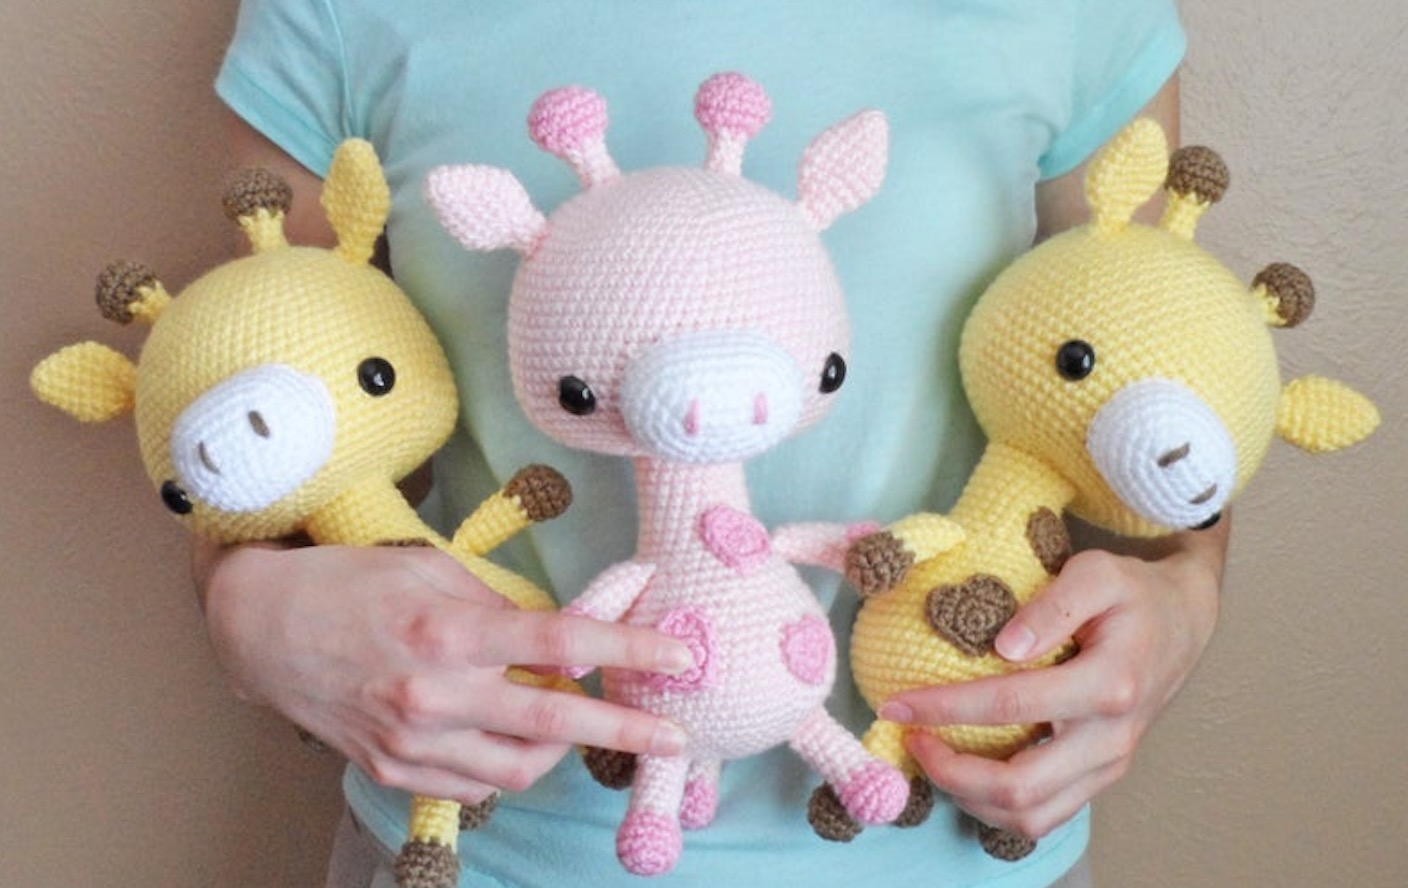 Naughty monkey pattern by April nana - Ravelry | 888x1408